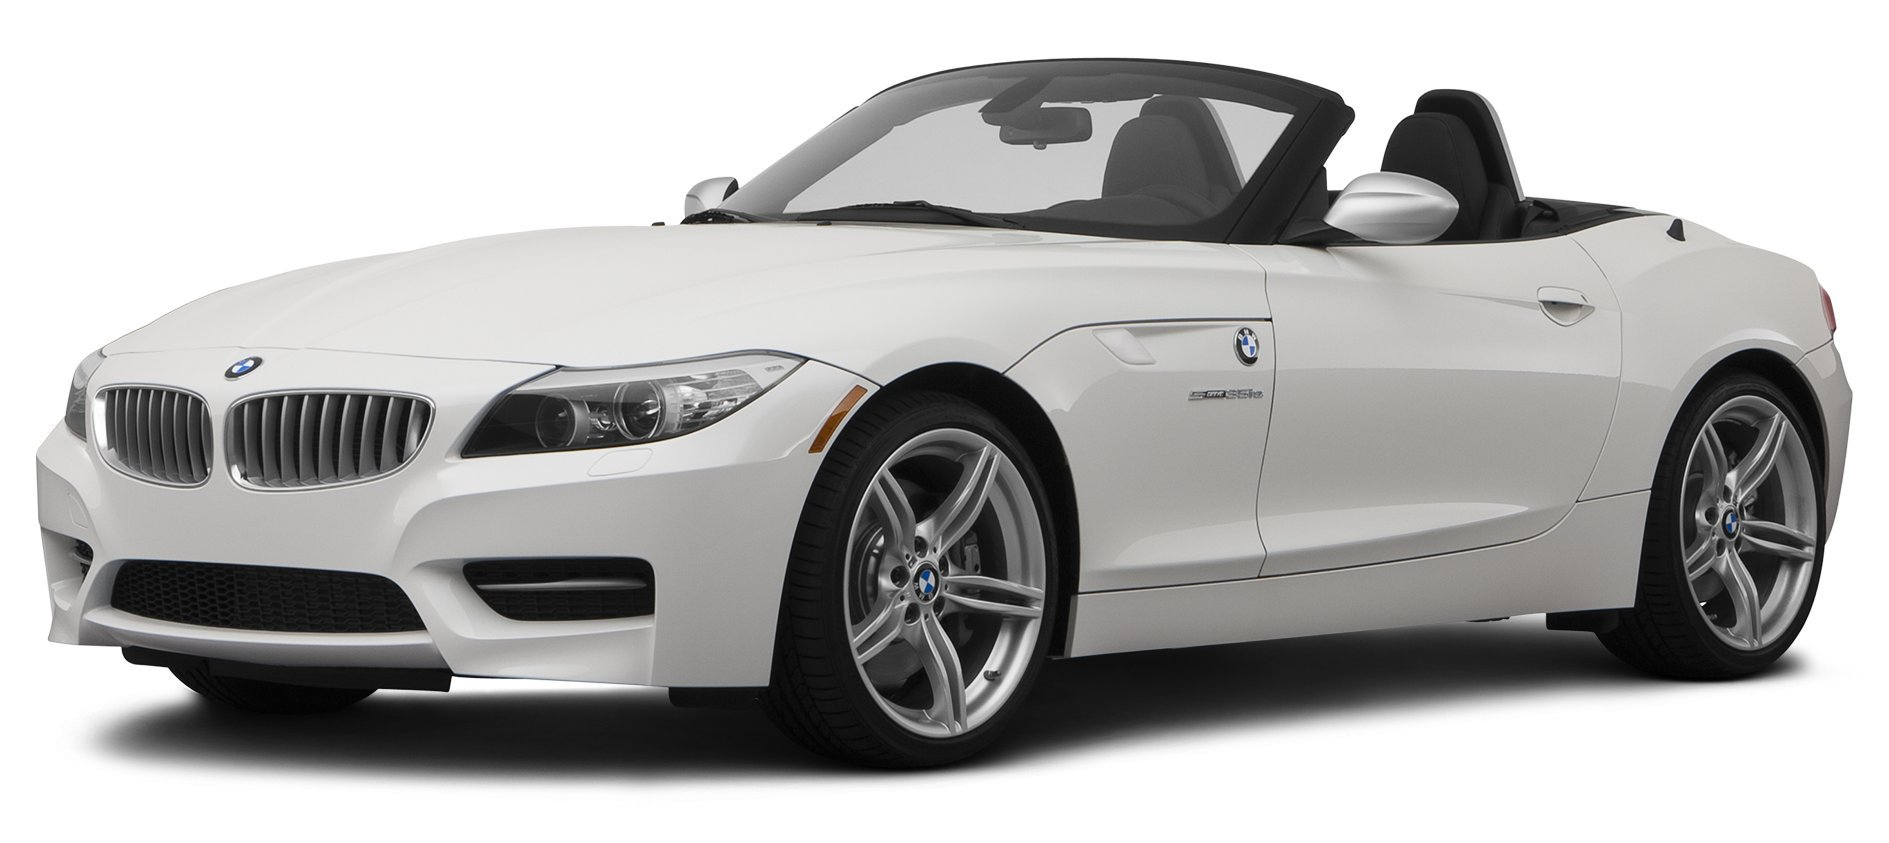 Amazoncom 2012 BMW Z4 Reviews Images and Specs Vehicles